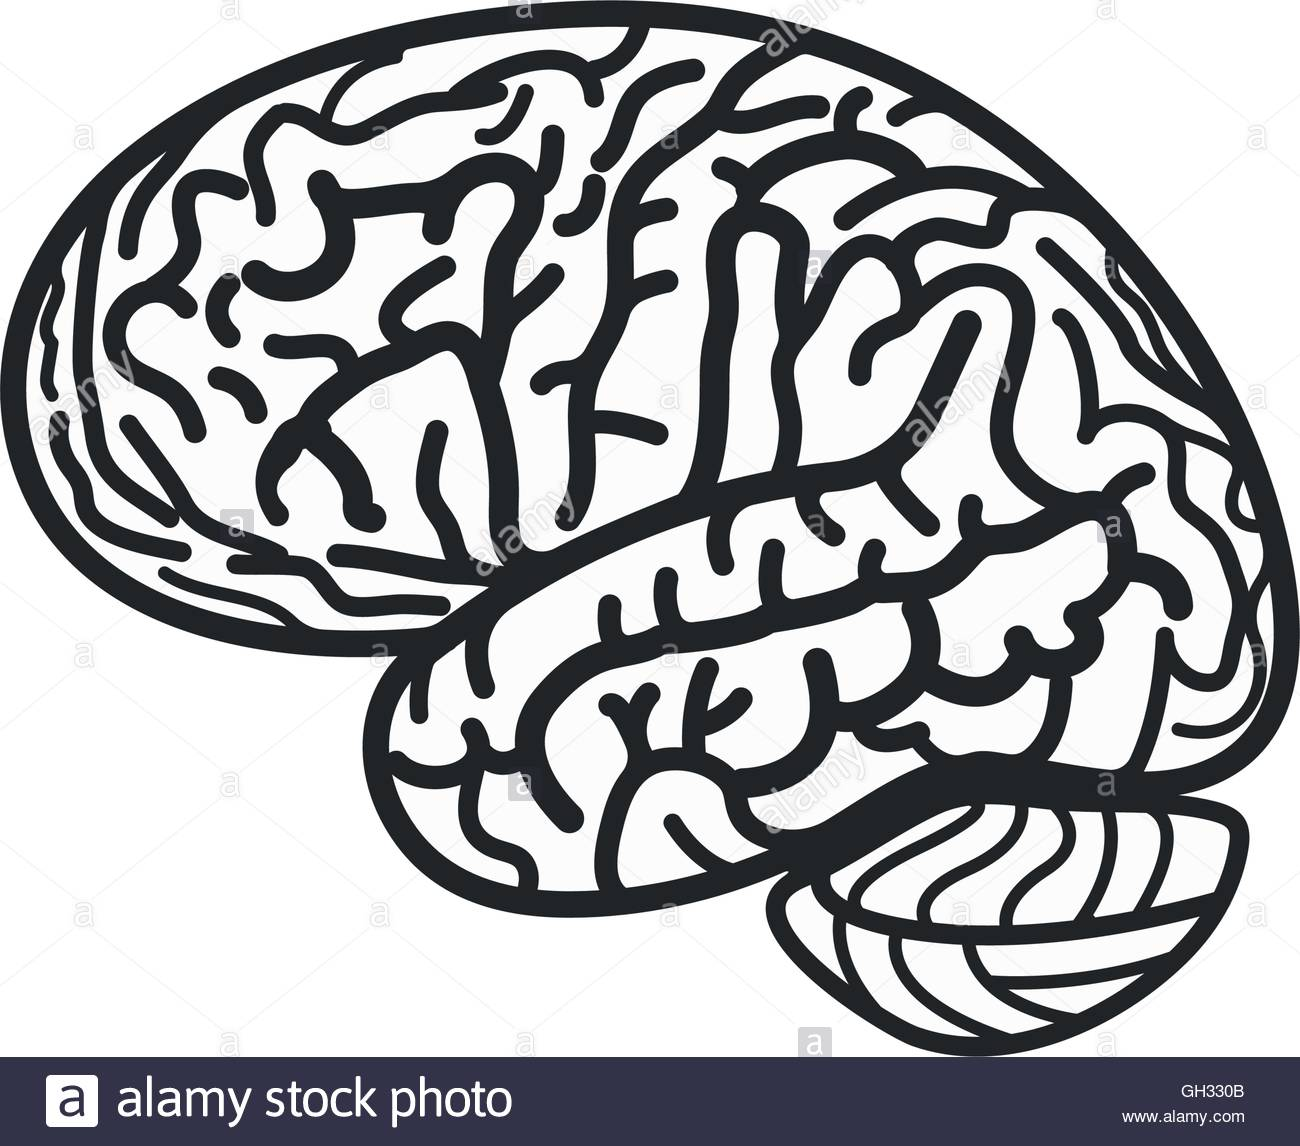 1300x1146 Isolated Black And White Brain Contour Vector Logo. Gyrus